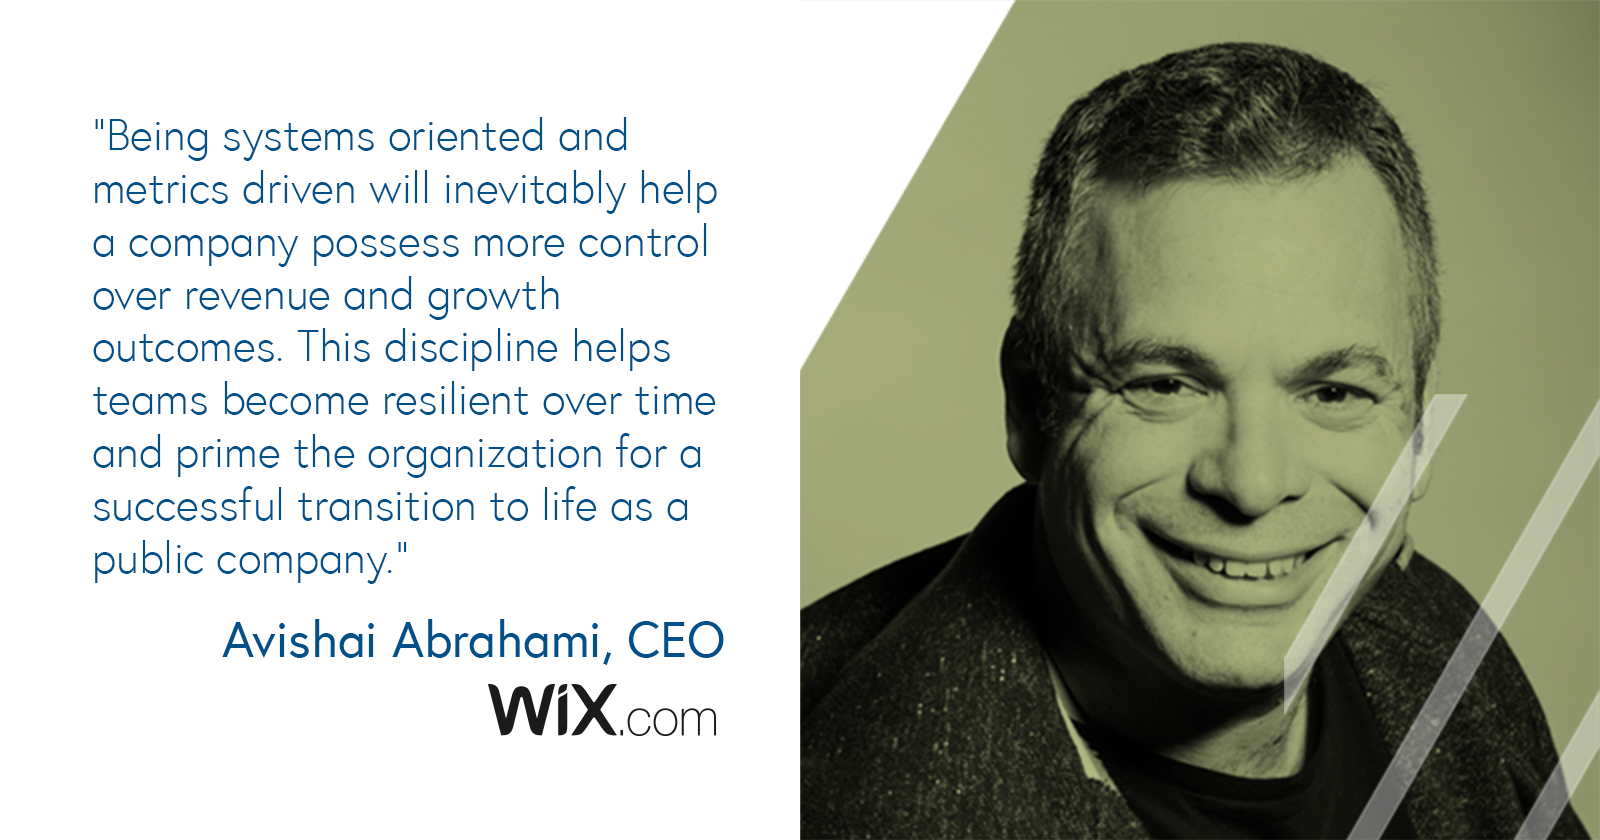 Avishai Abrahami, CEO of Wix.com on being metrics driven as a company goes public